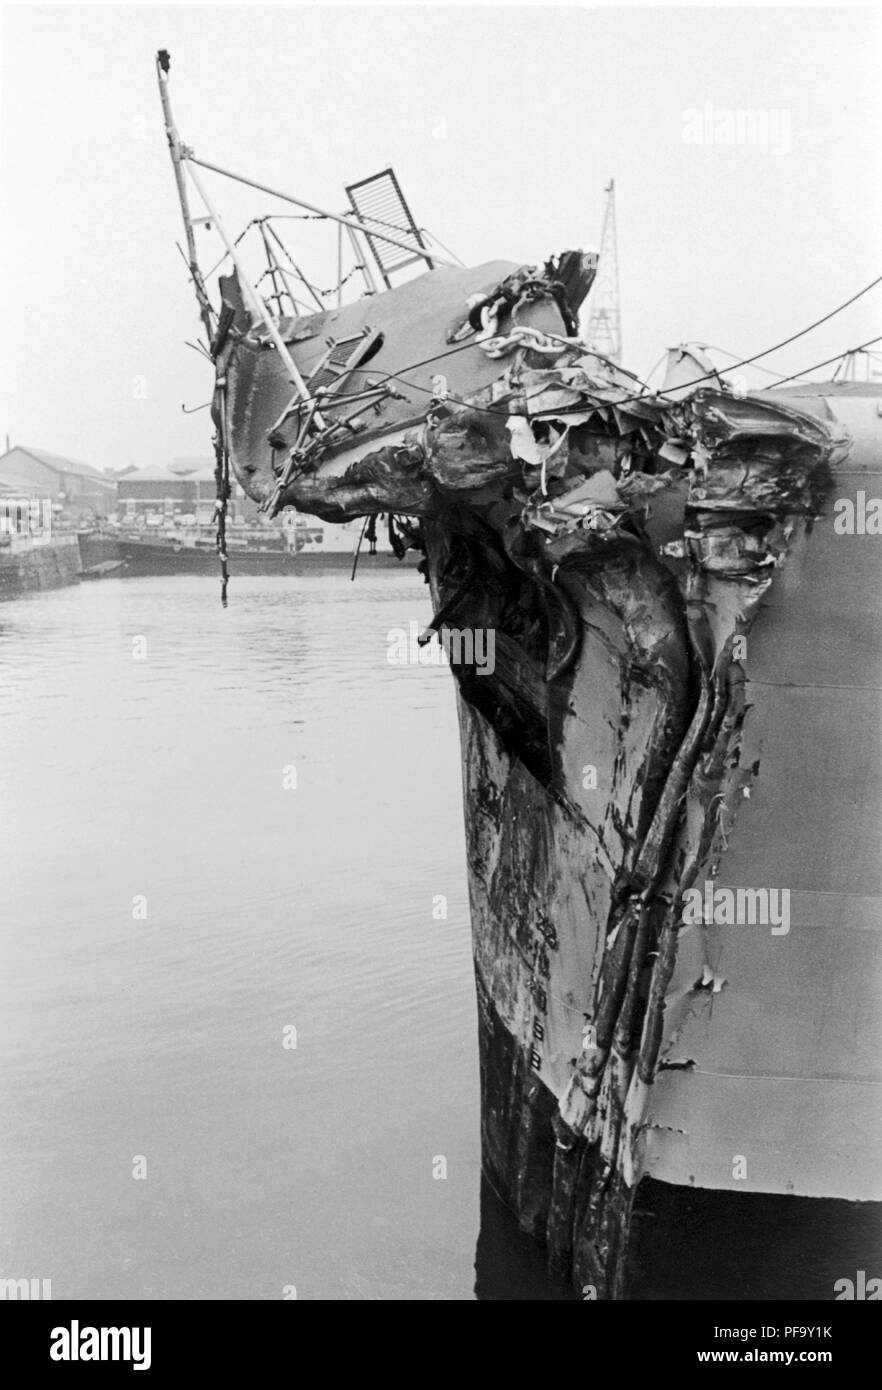 AJAXNETPHOTO. 13TH NOVEMBER, 1975. PORTSMOUTH, ENGLAND. -  BOW OF THE GP LEANDER CLASS FRIGATE HMS ACHILLES (2500 TONS). THE FRIGATE COLLIDED WITH LIBERIAN OIL TANKER OLYMPIC ALLIANCE 1 MILES S.E. OF DOVER NEAR VARNE LIGHTSHIP ON NIGHT OF 12/13 NOV 1975. THREE CREWMEN ON ACHILLES WERE INJURED. PHOTO:JONATHAN EASTLAND/AJAX REF:751311_2 - Stock Image